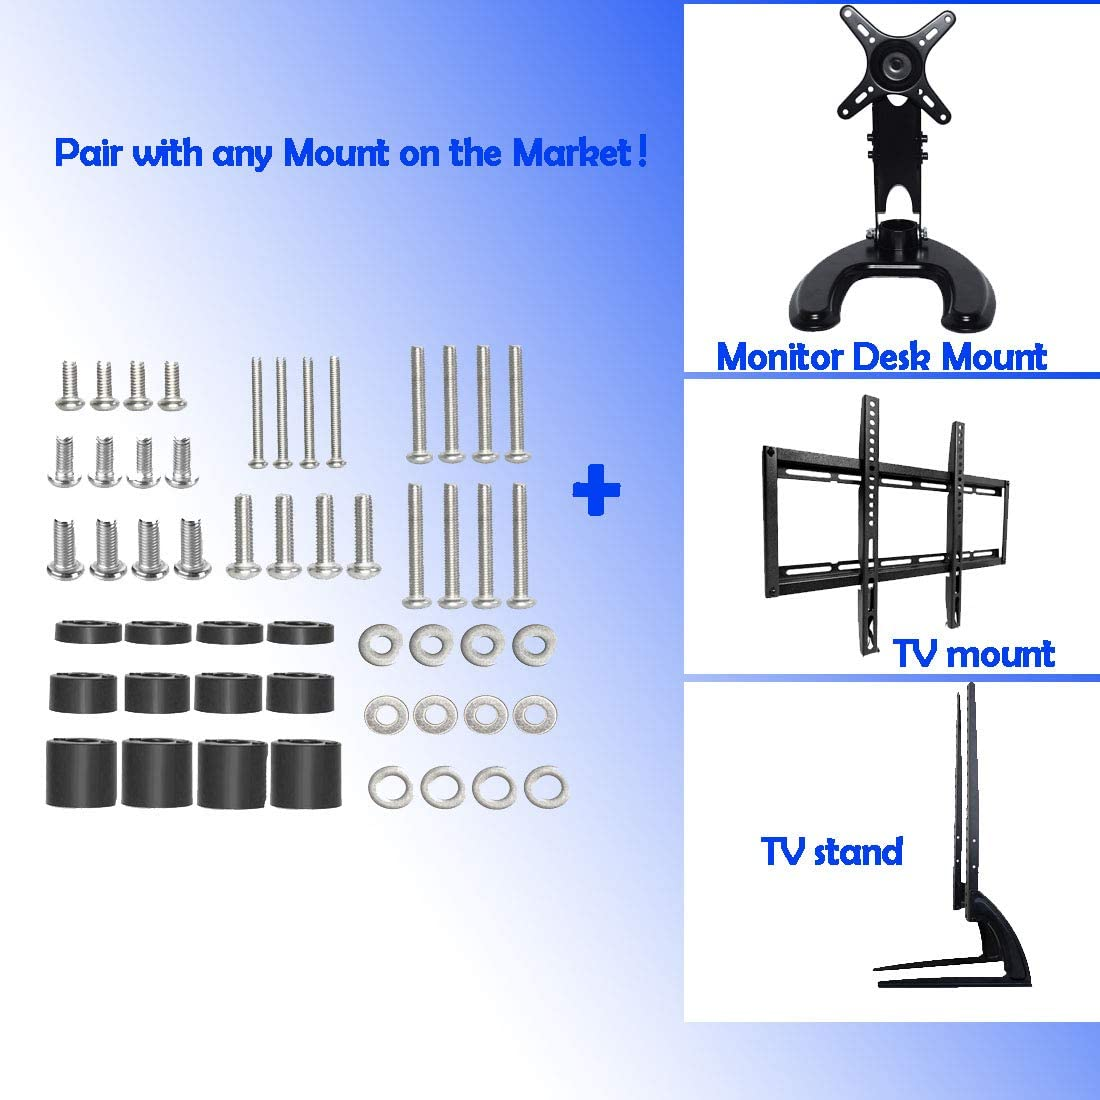 Universal TV Mounting Hardware Kit, Including Screws(M4 M5 M6), Washers, Gaskets,TV Mounting Hardware, for TV and Monitor Installation Wall Mount Hardware Kit can Install All TVs